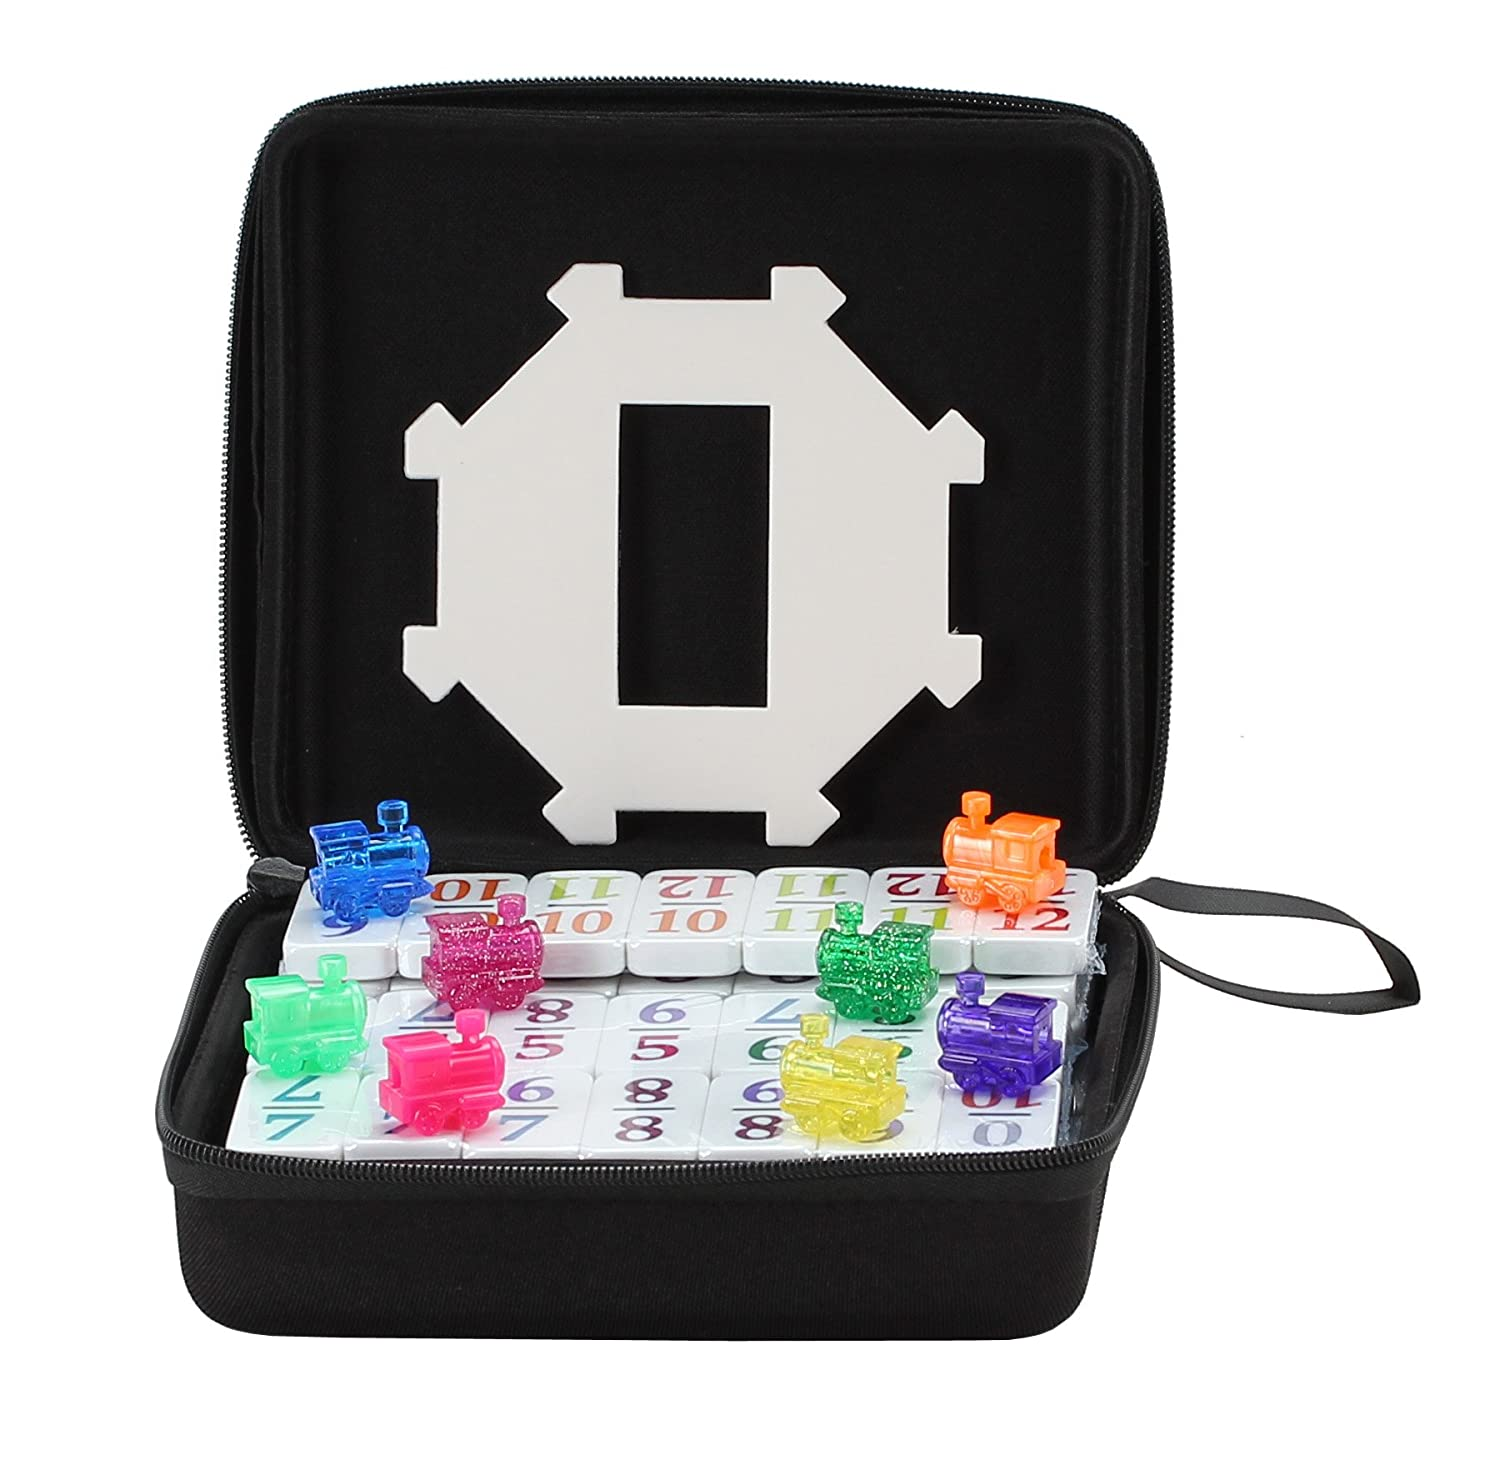 Double 12 Mexican Train Number Dominoes To Go Travel Size With Zip Up Case, Hub  8 Domino Trains by CHH